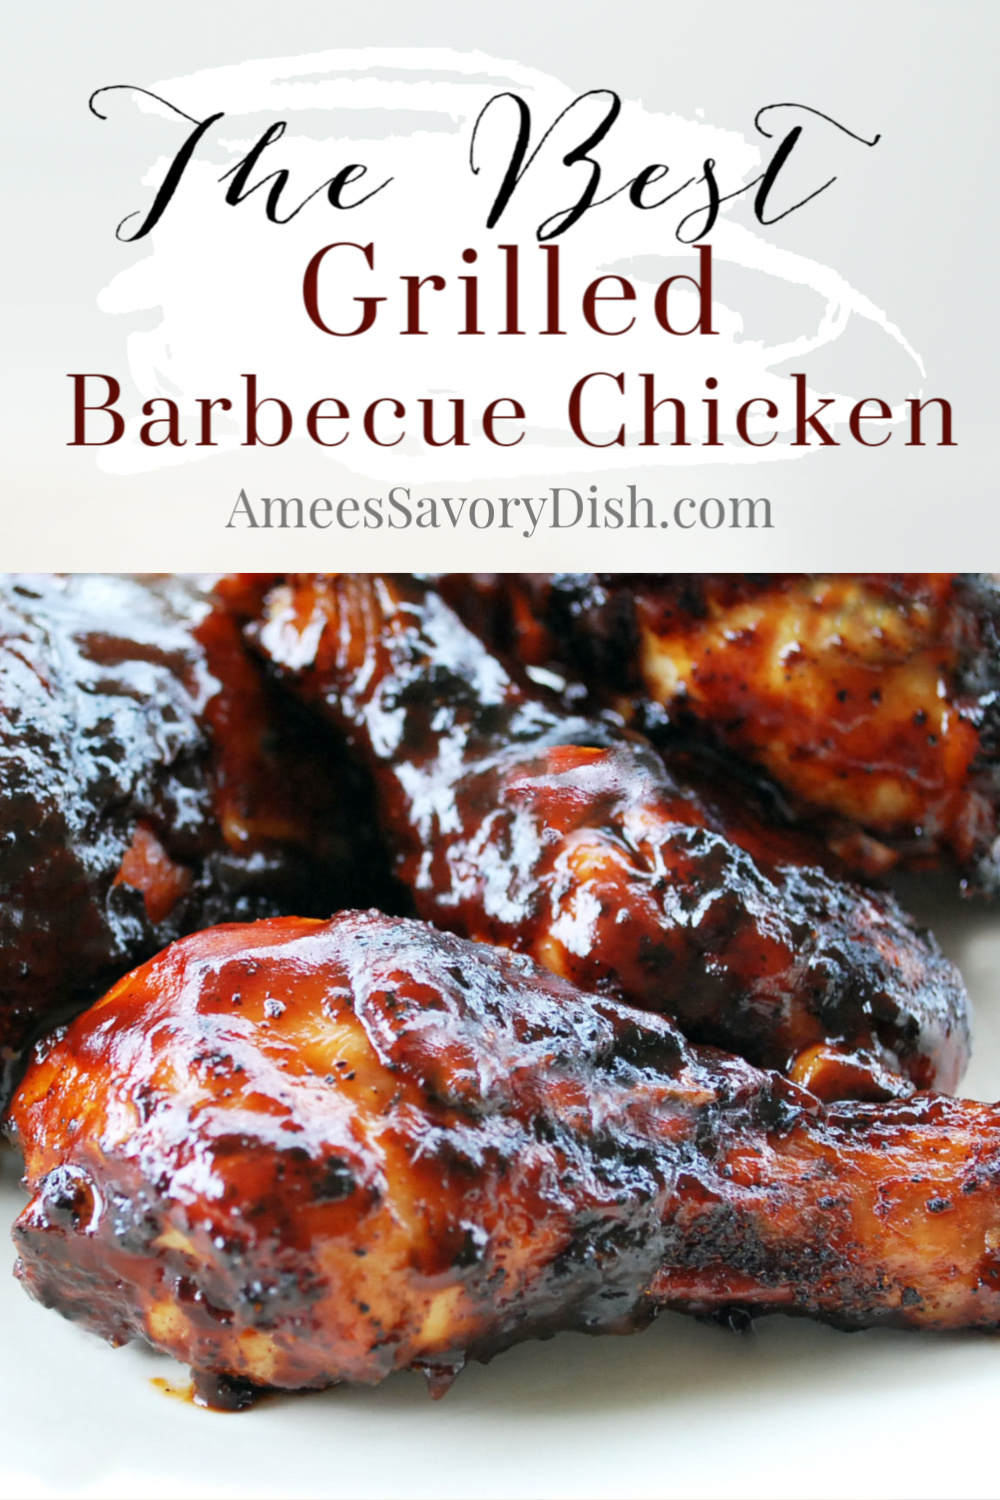 Grilled barbecue chicken can be difficult to cook perfectly. If left on too long, it can become dry, or the sauce can become burned. Grab my tips and recipe for making delicious, super moist grilled barbecue chicken! #grilledchicken #barbecuechicken #chickenrecipes via @Ameecooks